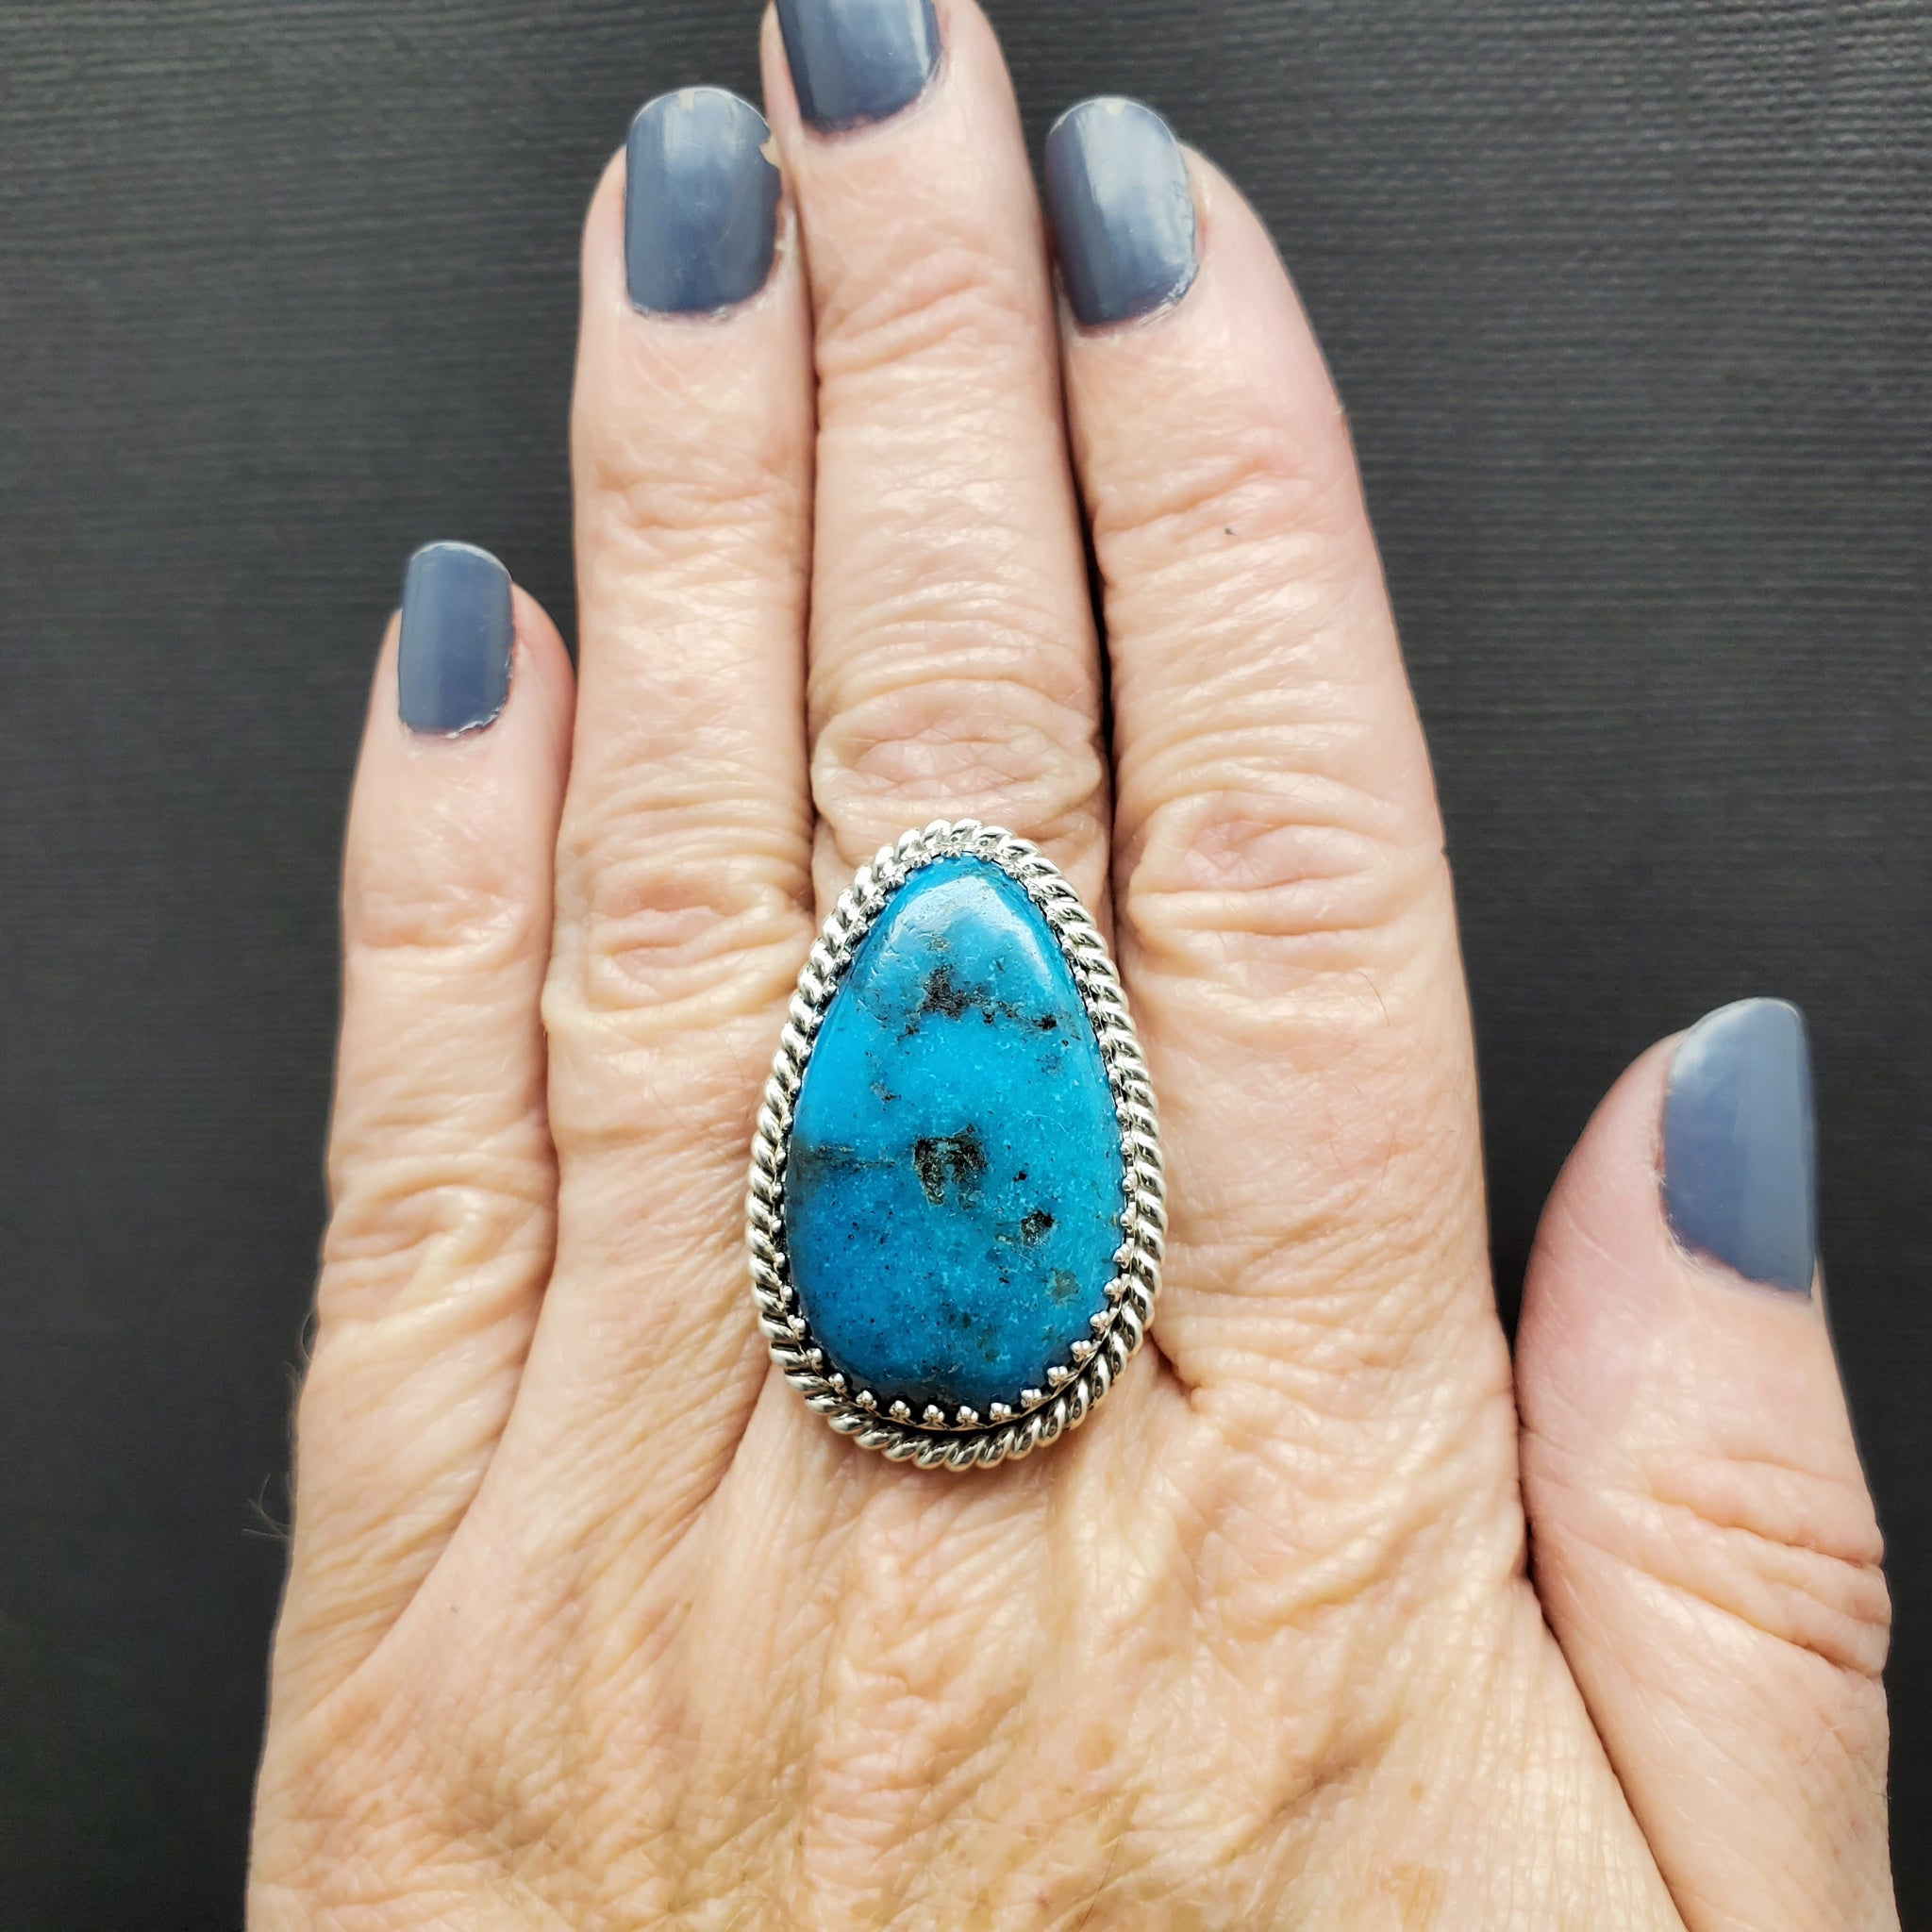 Sterling Silver Turquoise Adjustable Statement Ring by Raquel Hurley